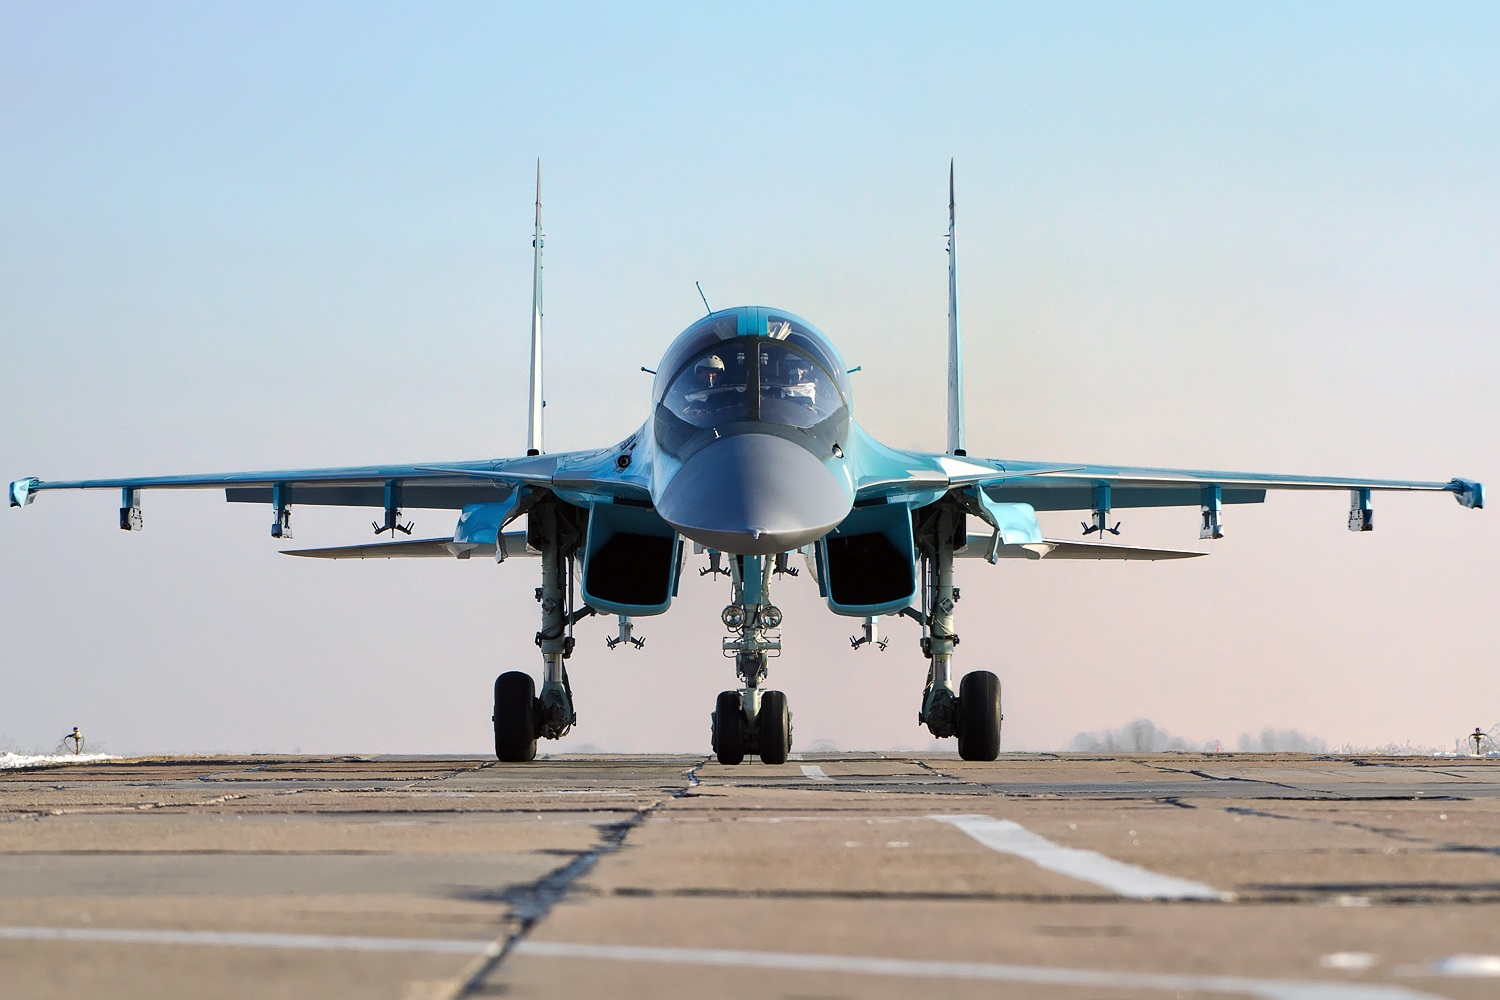 Meet the Su-34 Fighter-Bomber: Could Russia Sell This Deadly Jet to Turkey?